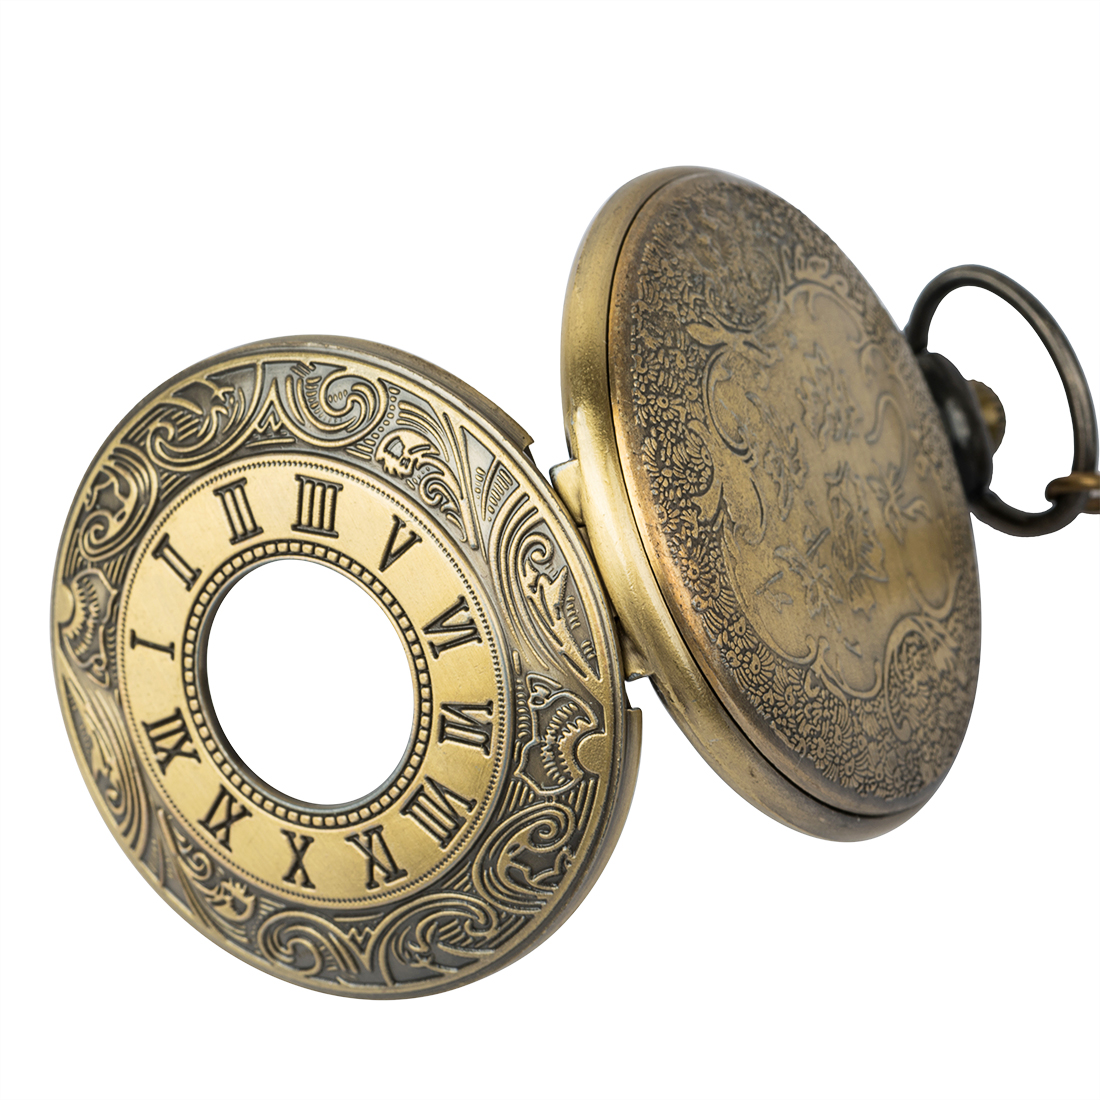 Vintage Bronze Roman Numerals Automatic Mechanical Pocket Watches Men Women Carving Retro Transparent Glass Cover Chain Gifts in Pocket Fob Watches from Watches